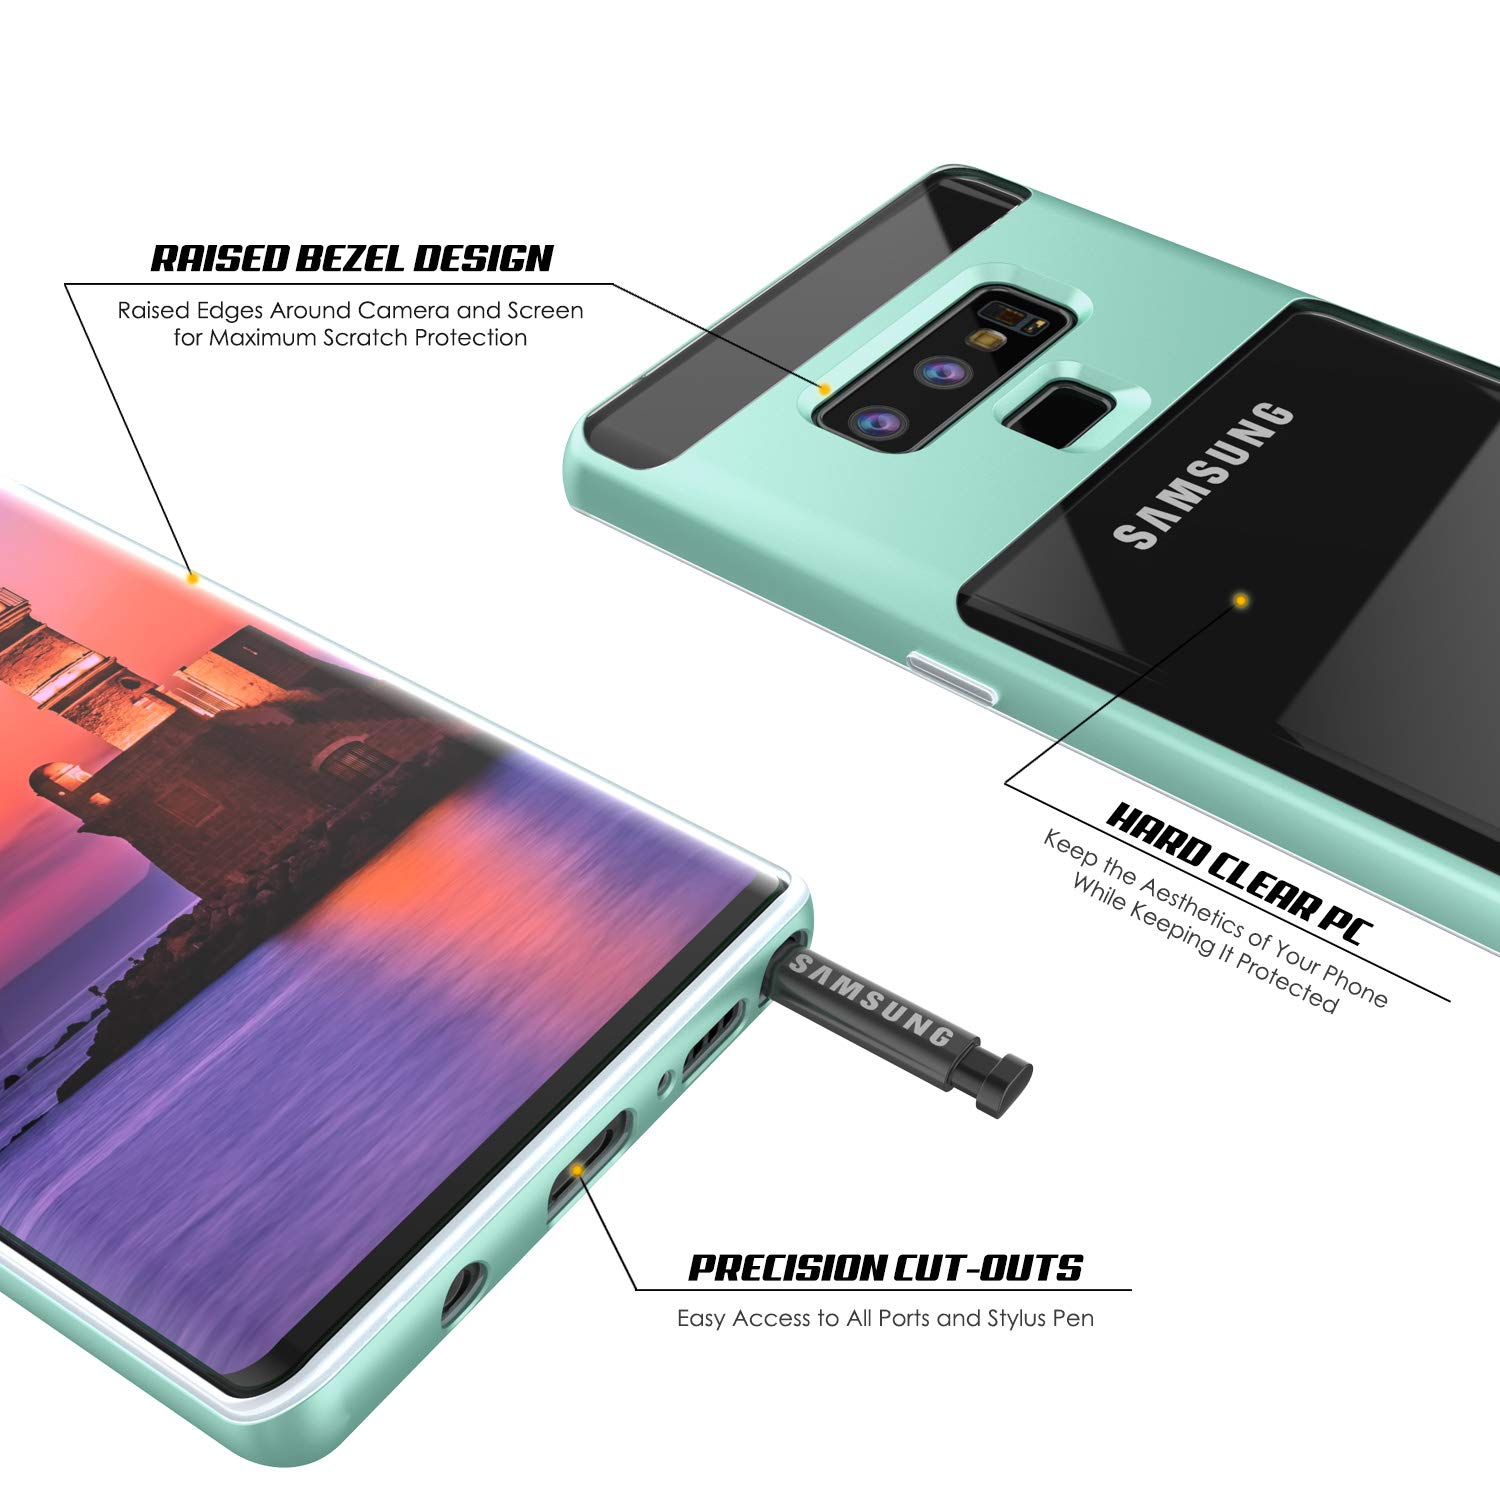 Galaxy Note 9 Case, PUNKcase [Lucid 3.0 Series] [Slim Fit] [Clear Back] Armor Cover w/Integrated Kickstand, Anti-Shock System & PUNKSHIELD Screen Protector for Samsung Galaxy Note 9 [Teal]